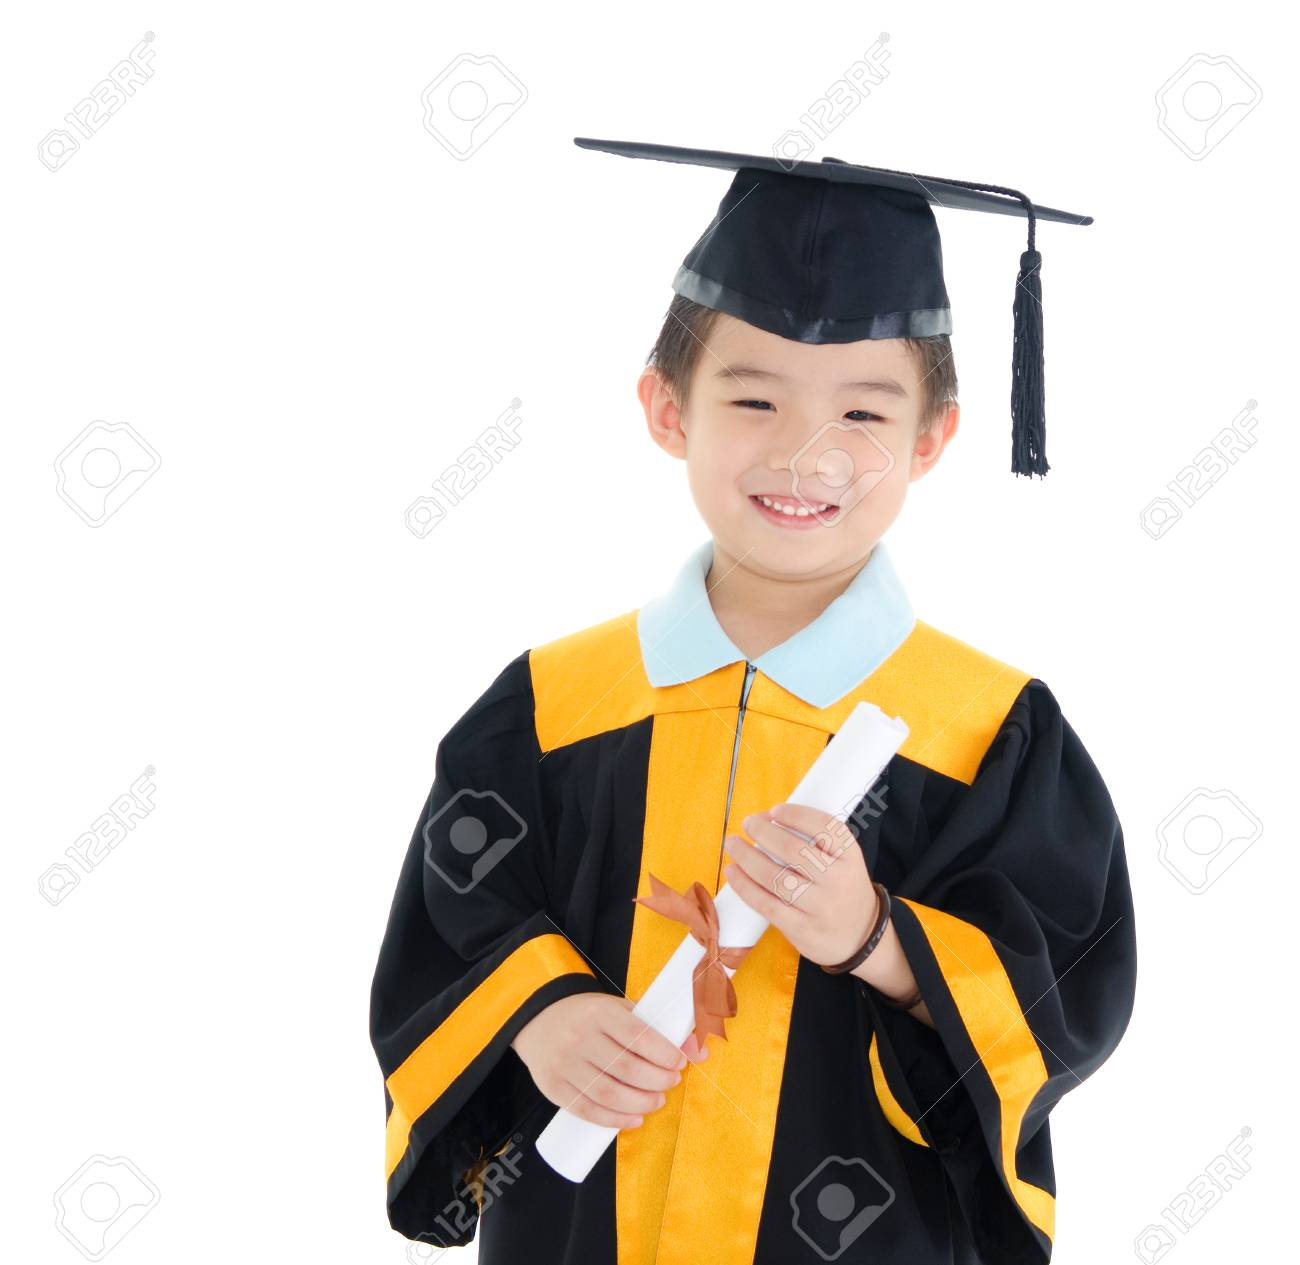 Asian Boy In Graduation Gown And Mortarboard Stock Photo, Picture ...